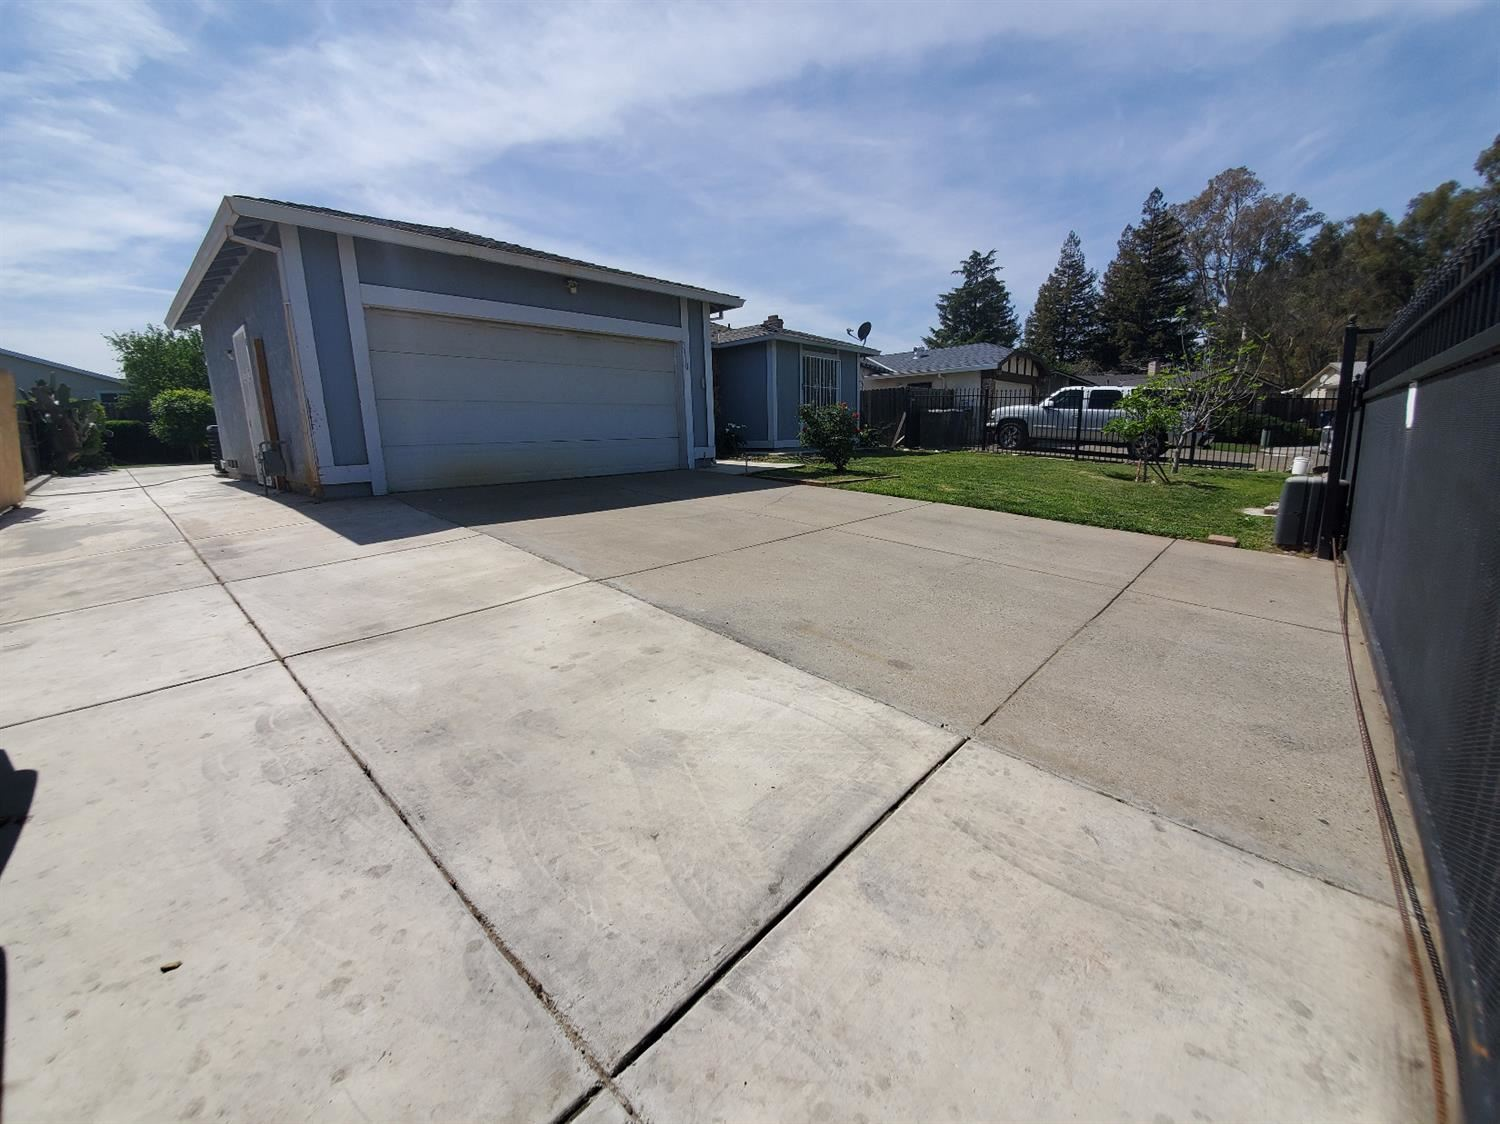 Photo of 3910 Cottontail Way, Sacramento, CA 95823 (MLS # 221033722)